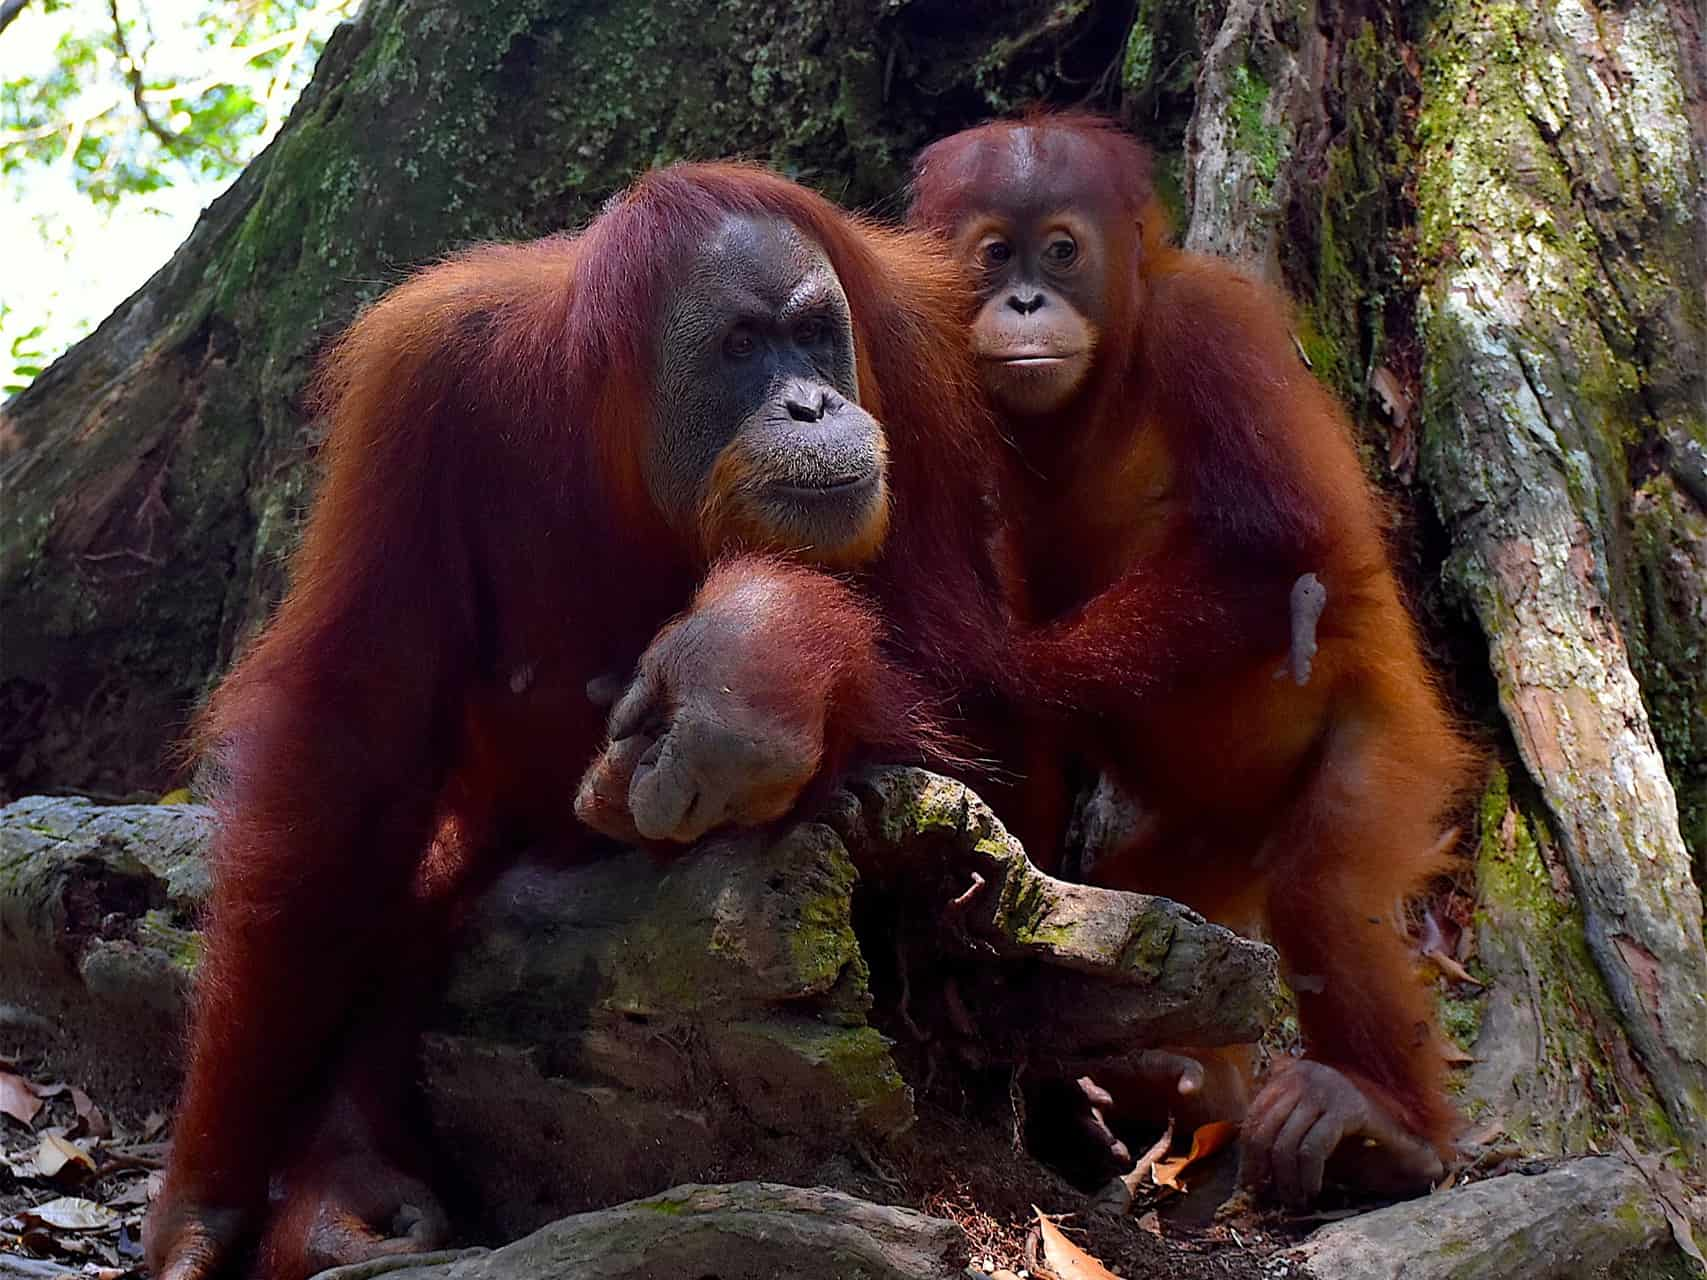 SUMATRAN ORANGUTAN FAMILY IN GUNUNG LEUSER NATIONAL PARK - BUKIT LAWANG JUNGLE TREKKING BY SUMATRA ECOTRAVEL